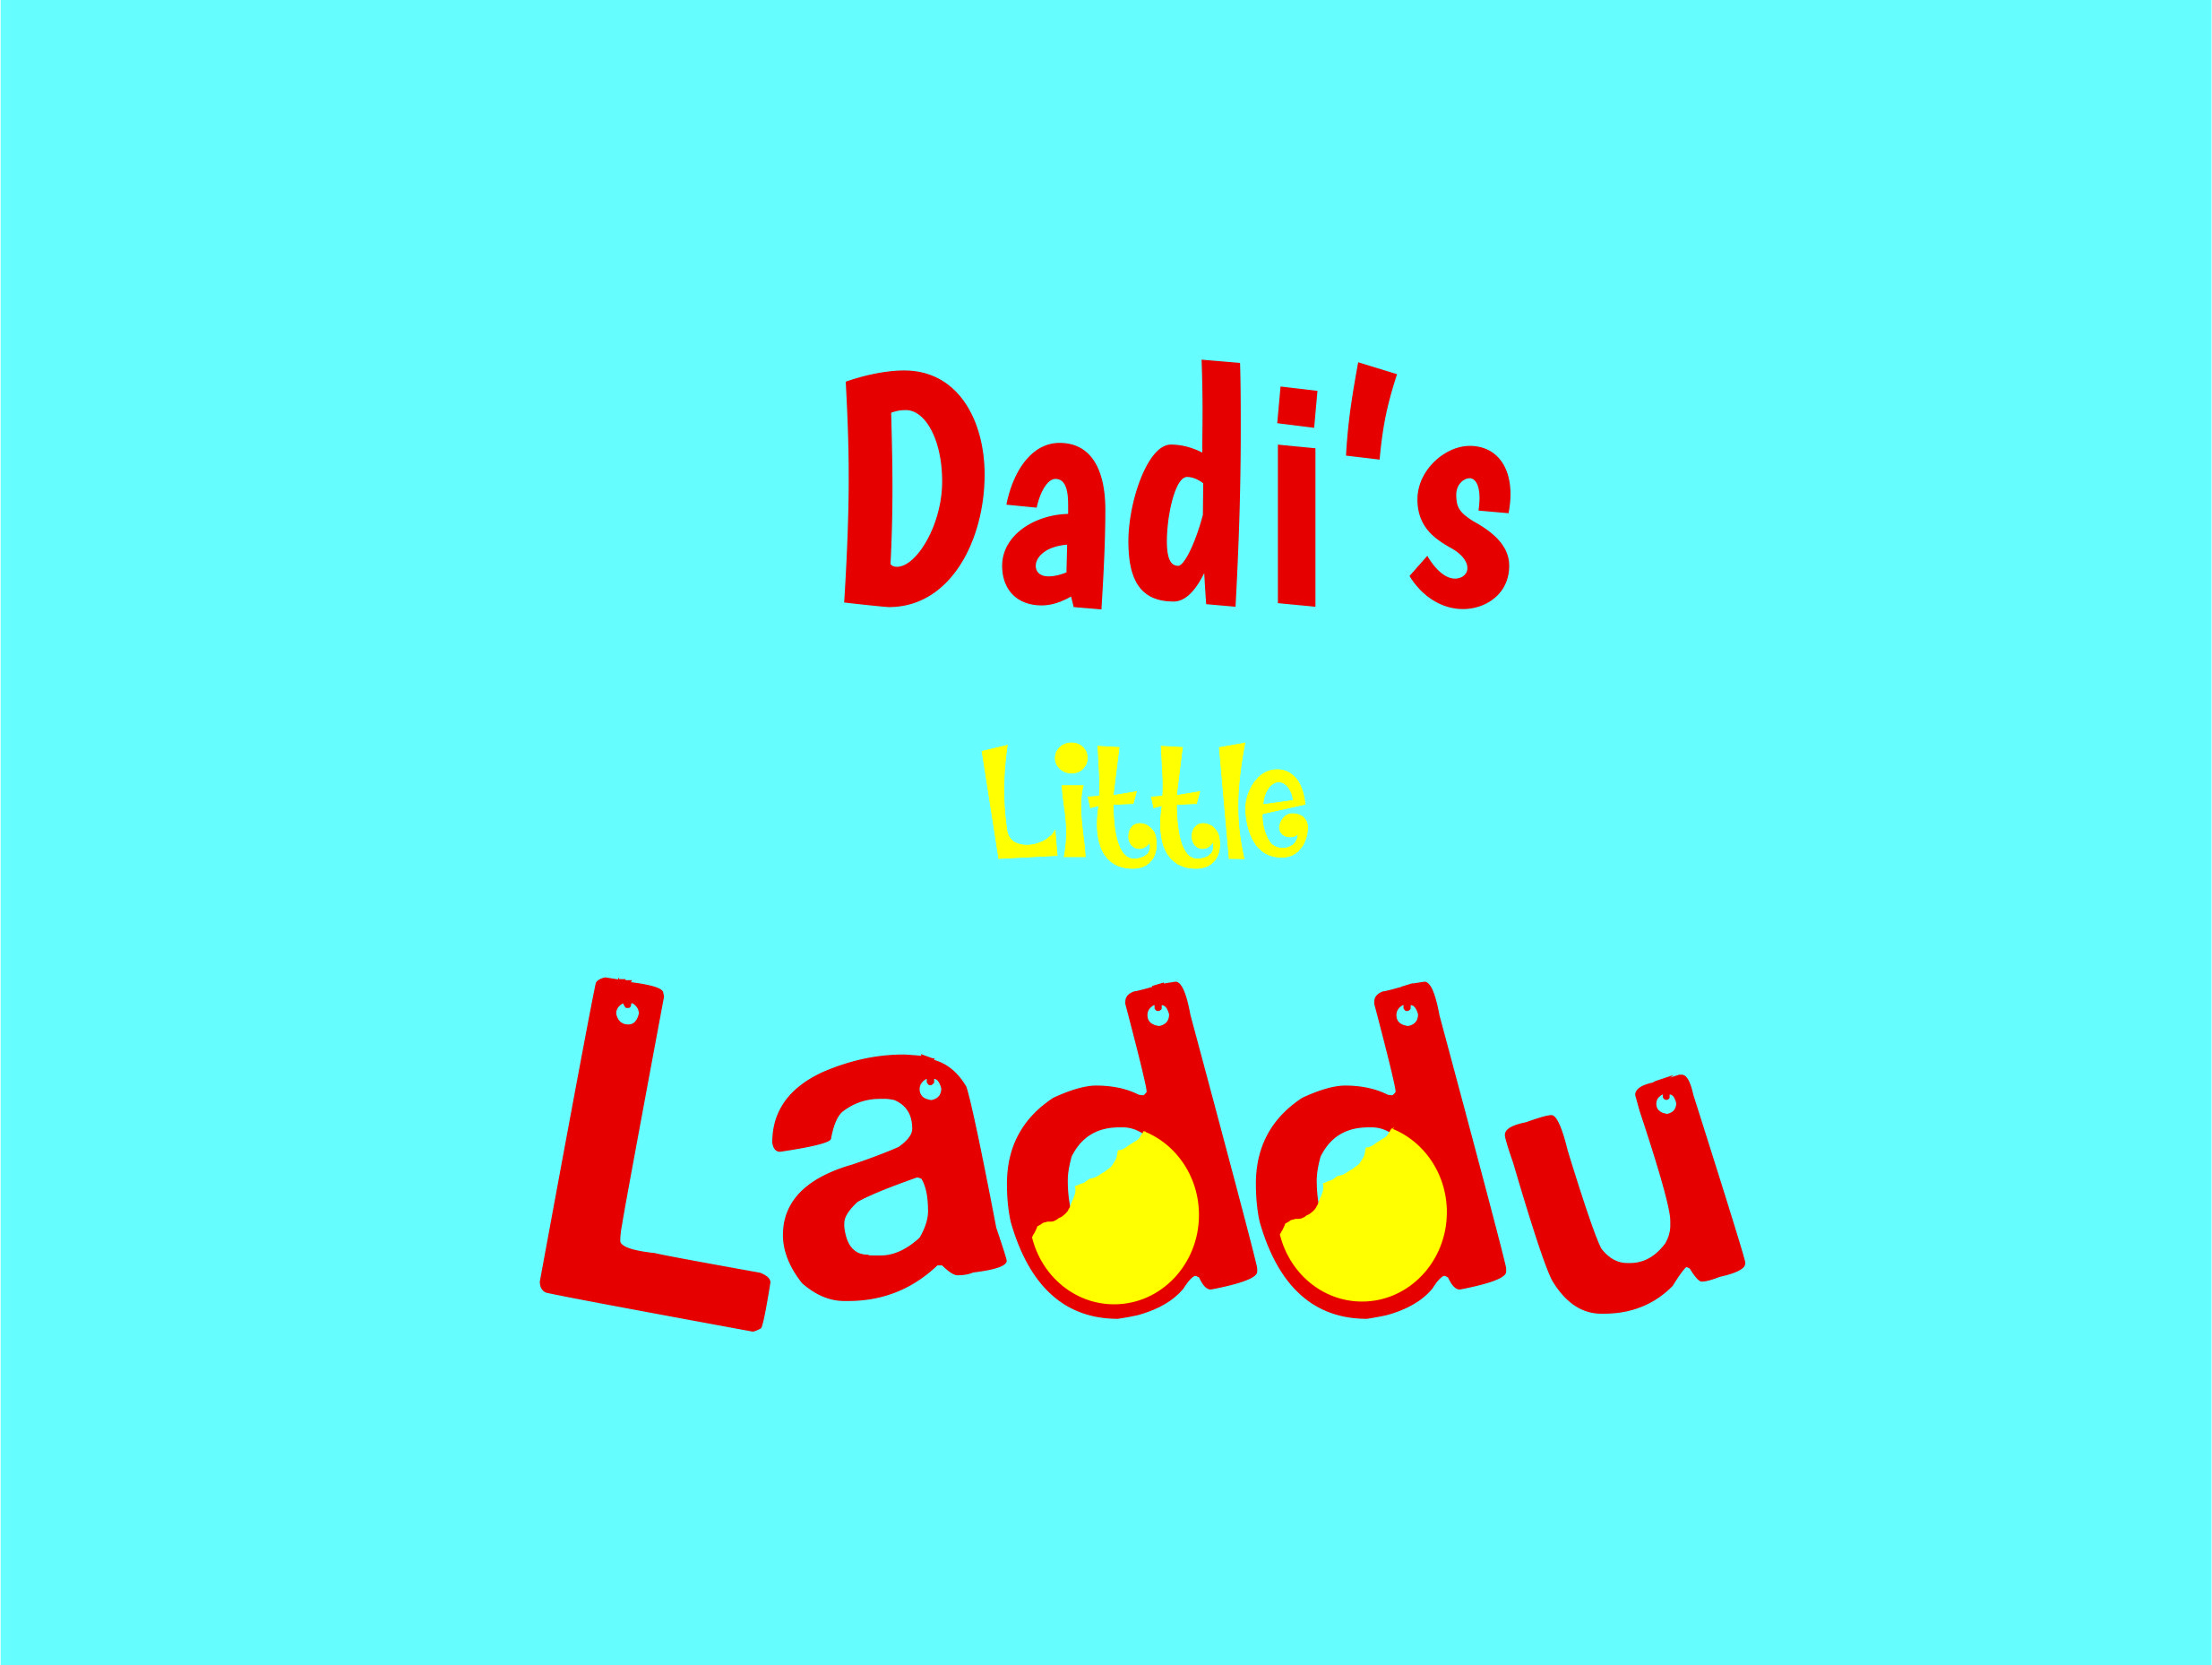 DADIS-LITTLE-LADDU-B.jpg